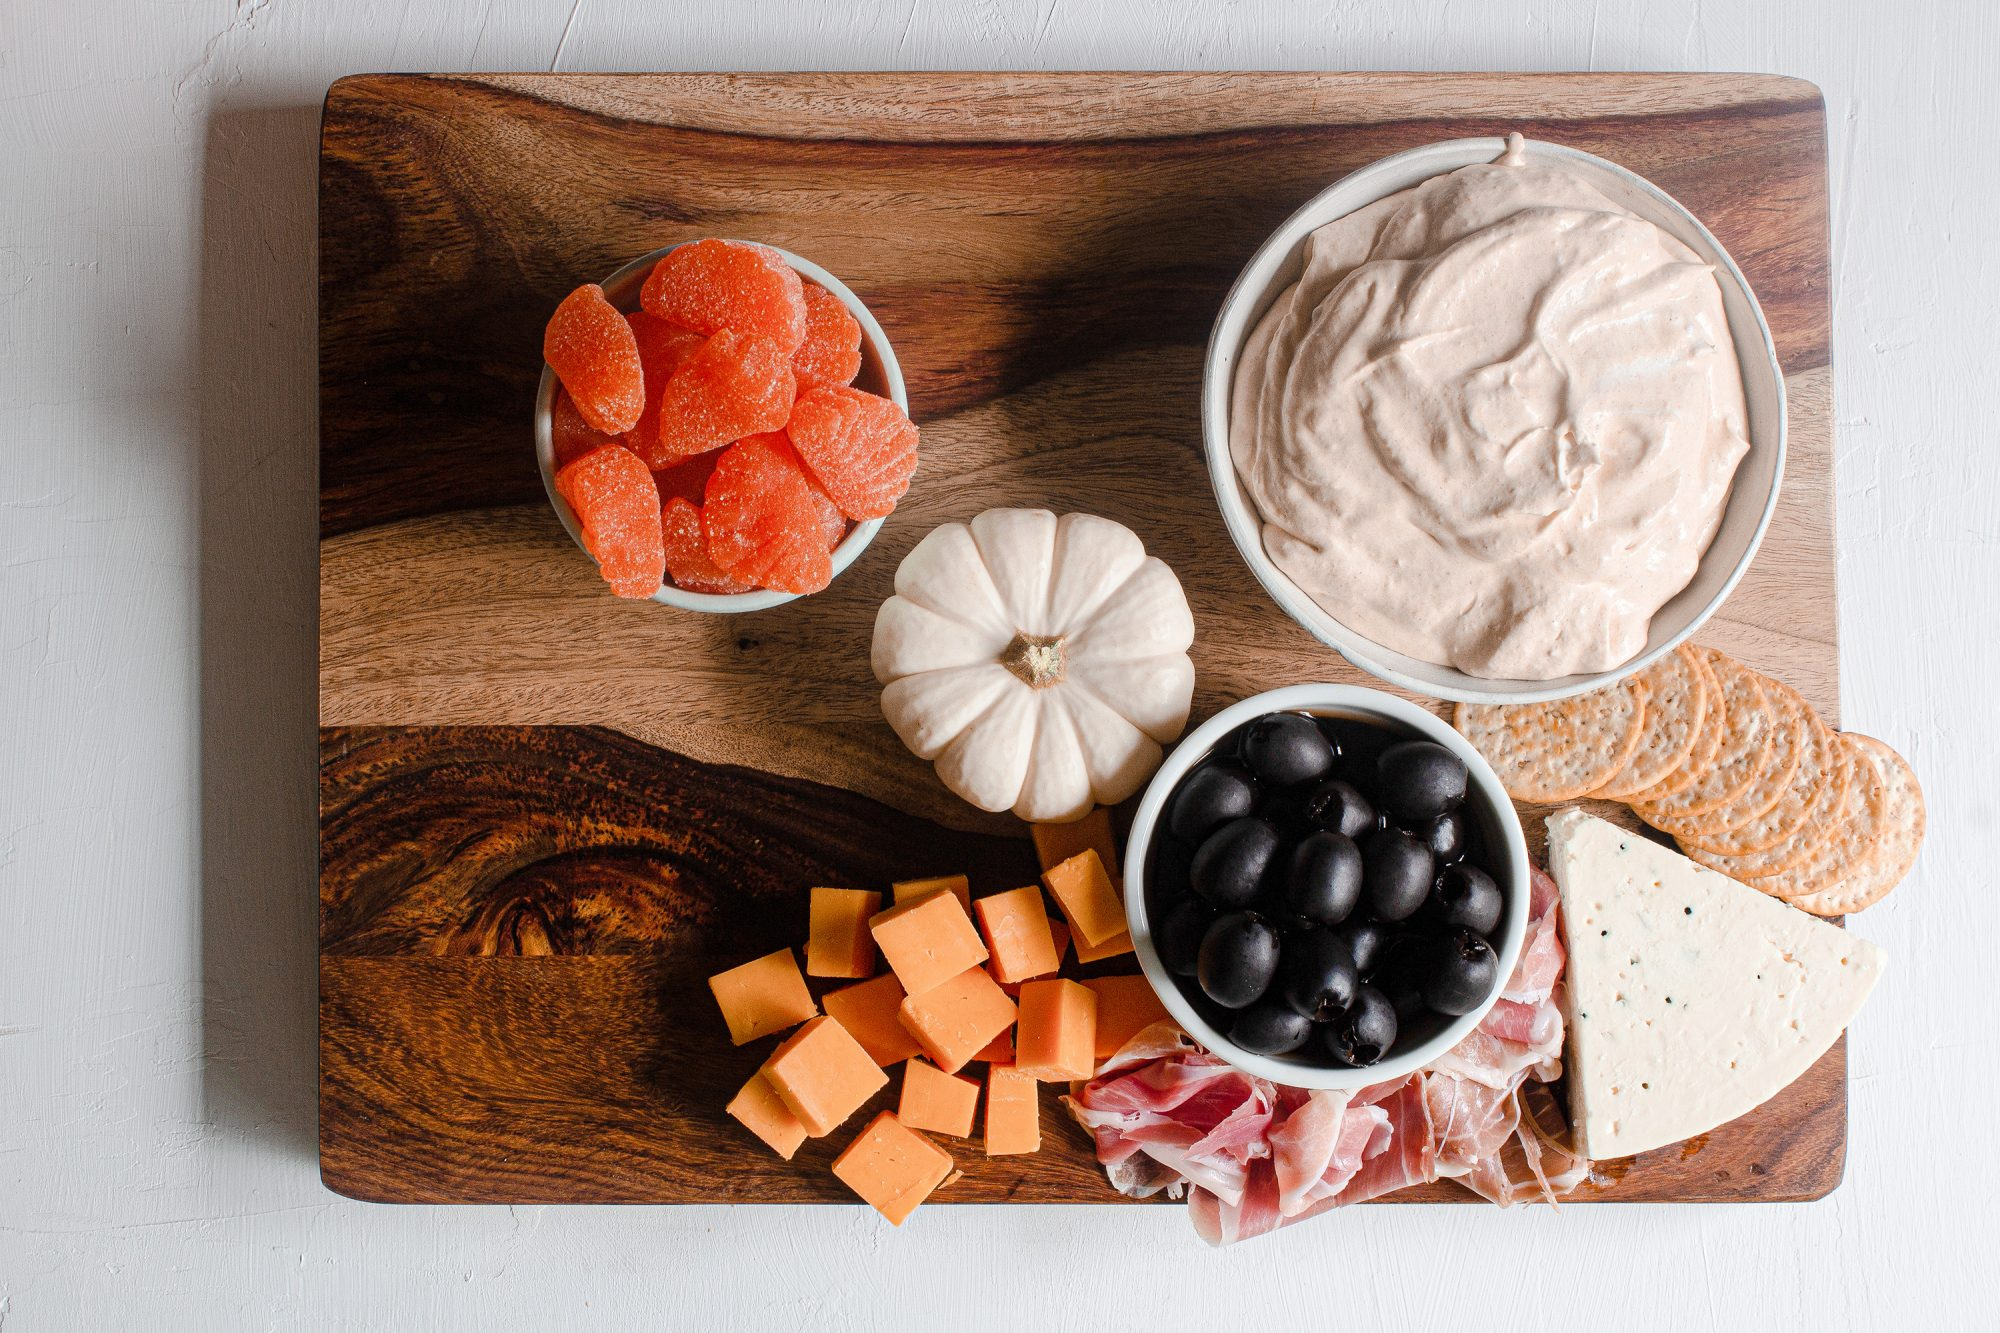 halloween charcuterie board with cheeses and meats addes